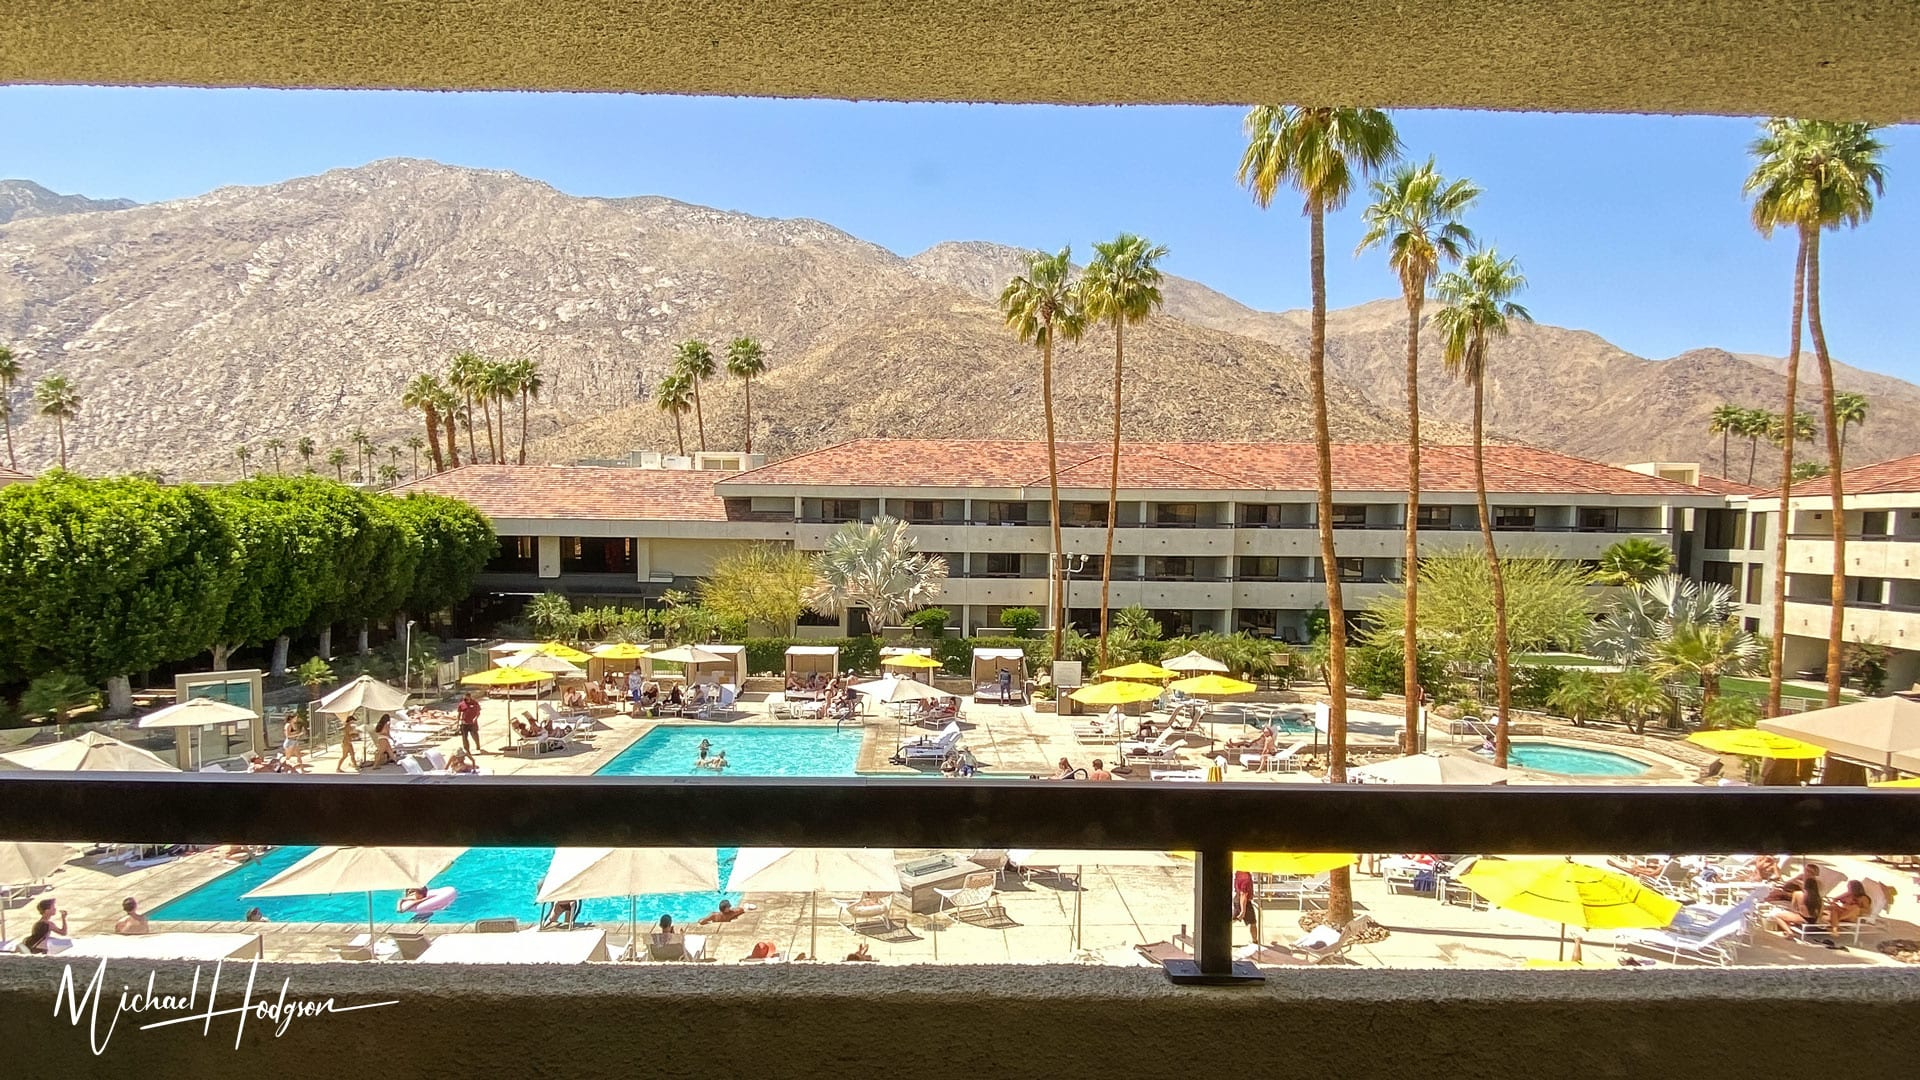 Hilton Palm Springs Resort Hotel Pool And Mountain View